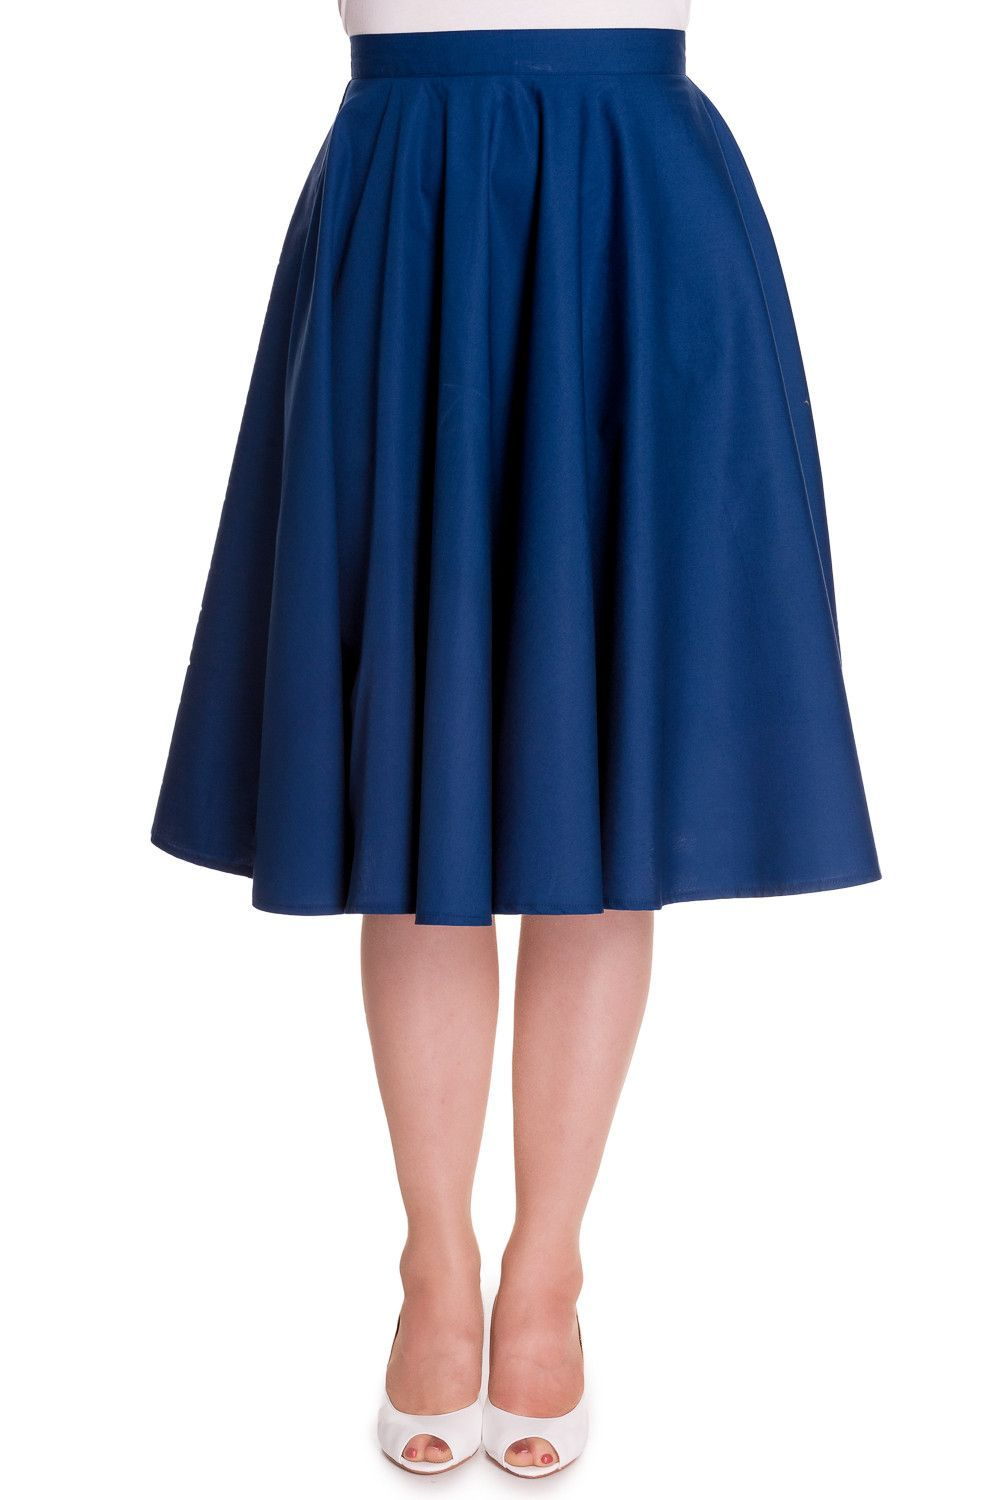 f47f2a0492 Must have retro 50's style circle skirt by Hell Bunny is made from a black  100% cotton, Full circle skirt with back zip button closure and perfect  length of ...